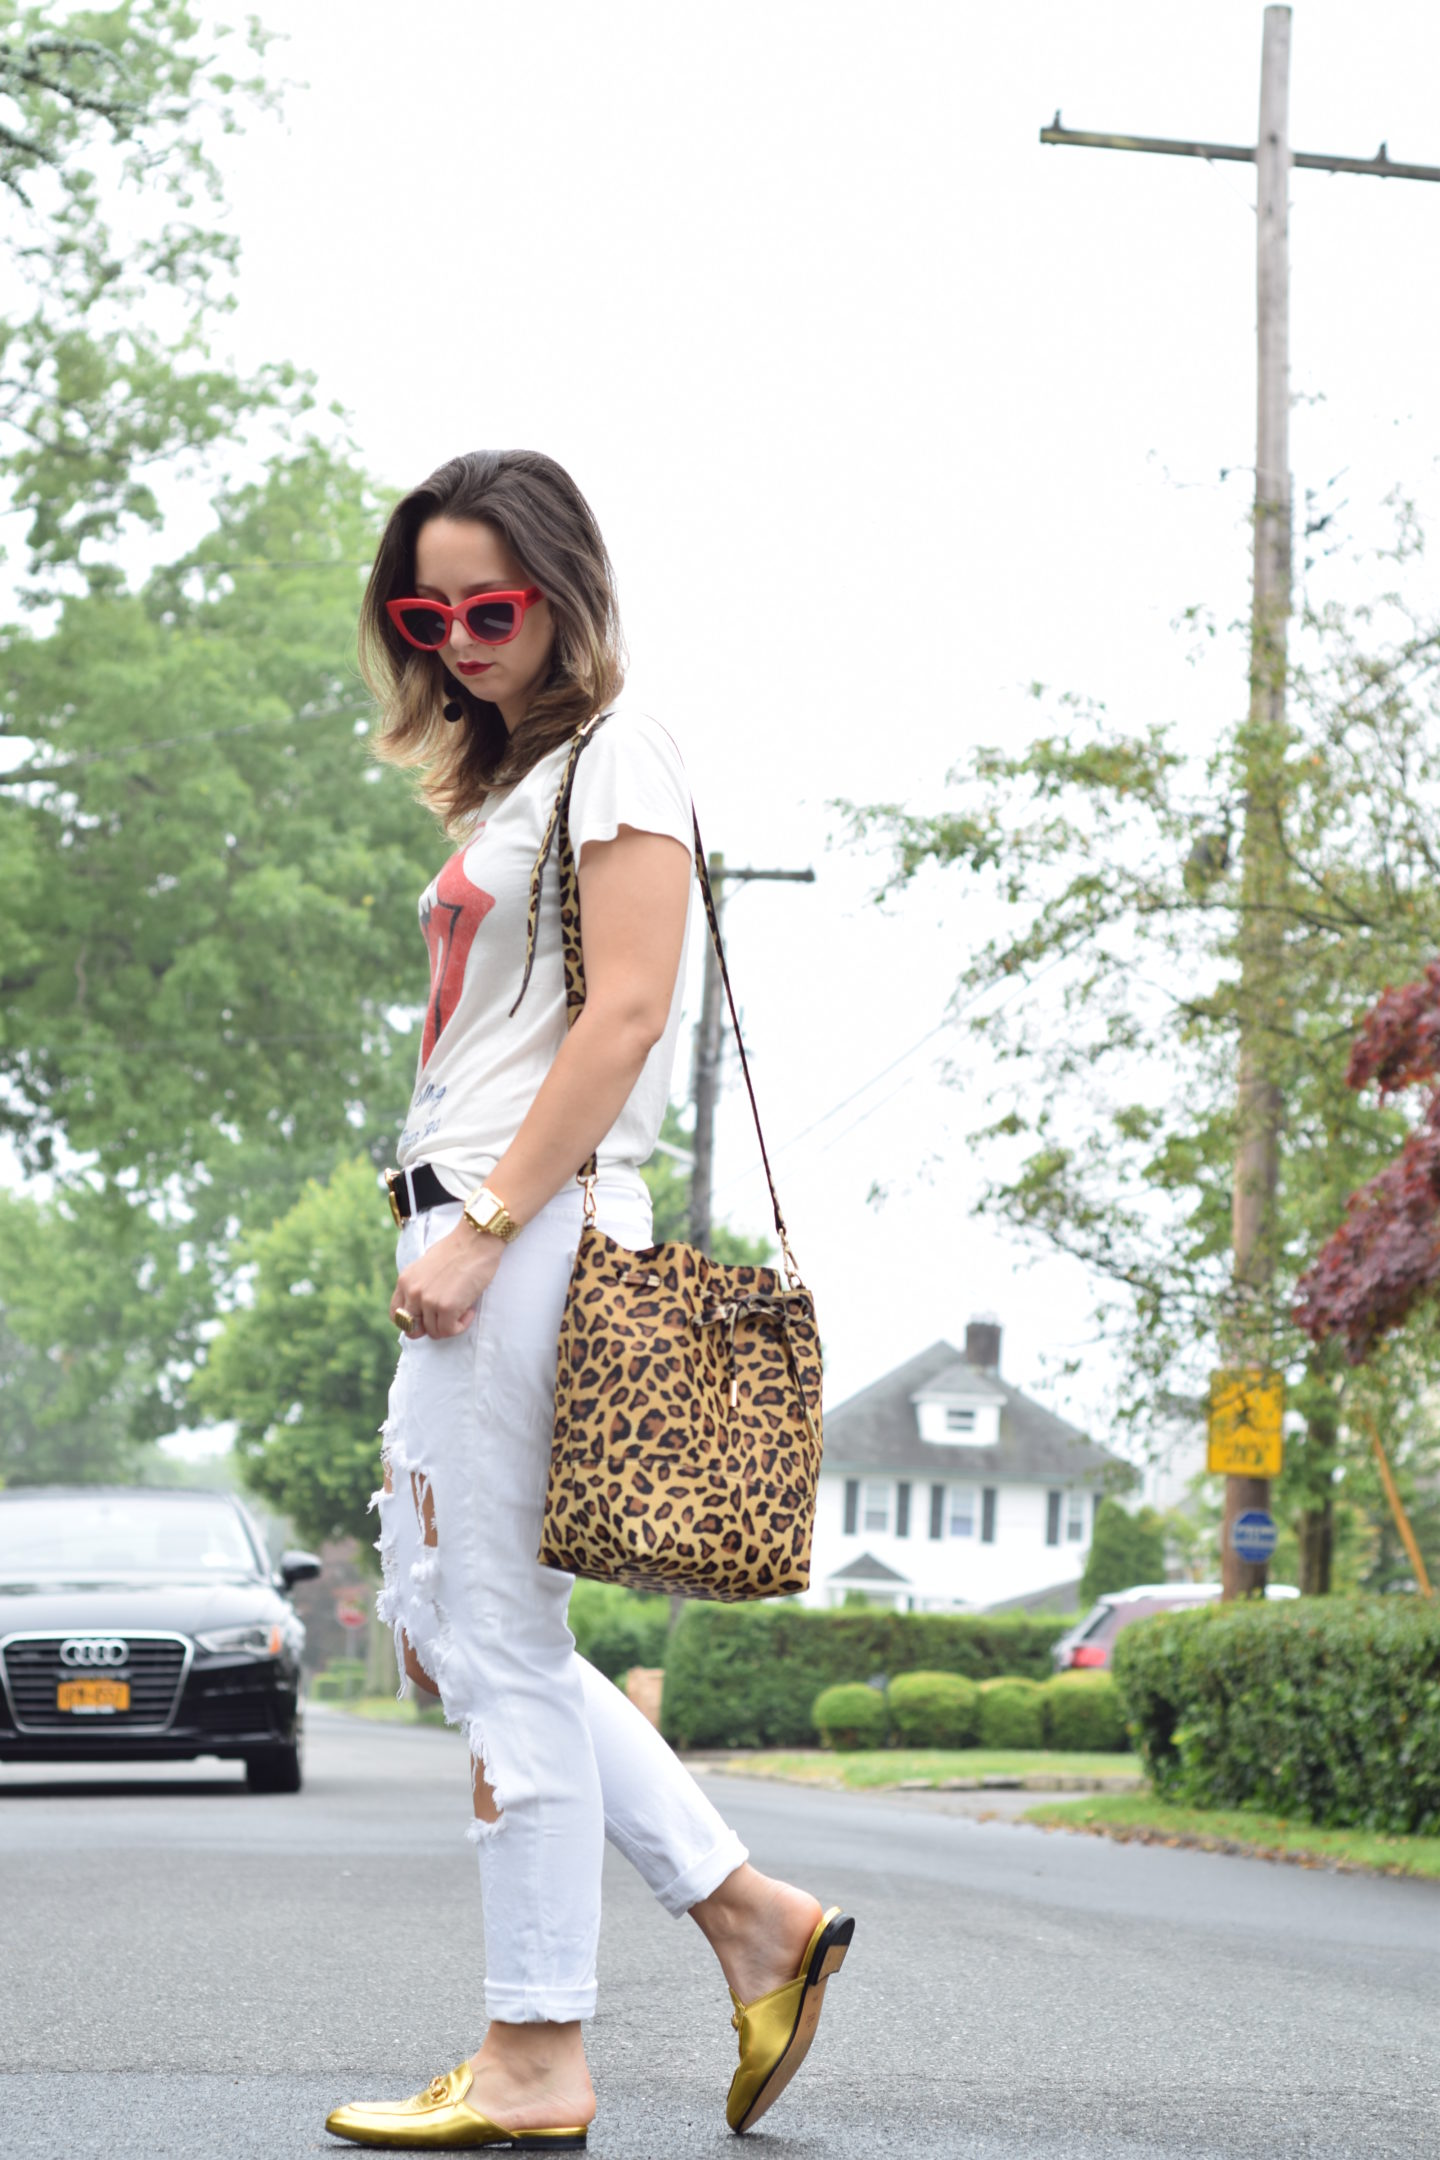 Mon Purse: A Brand that Caters To Your Individuality